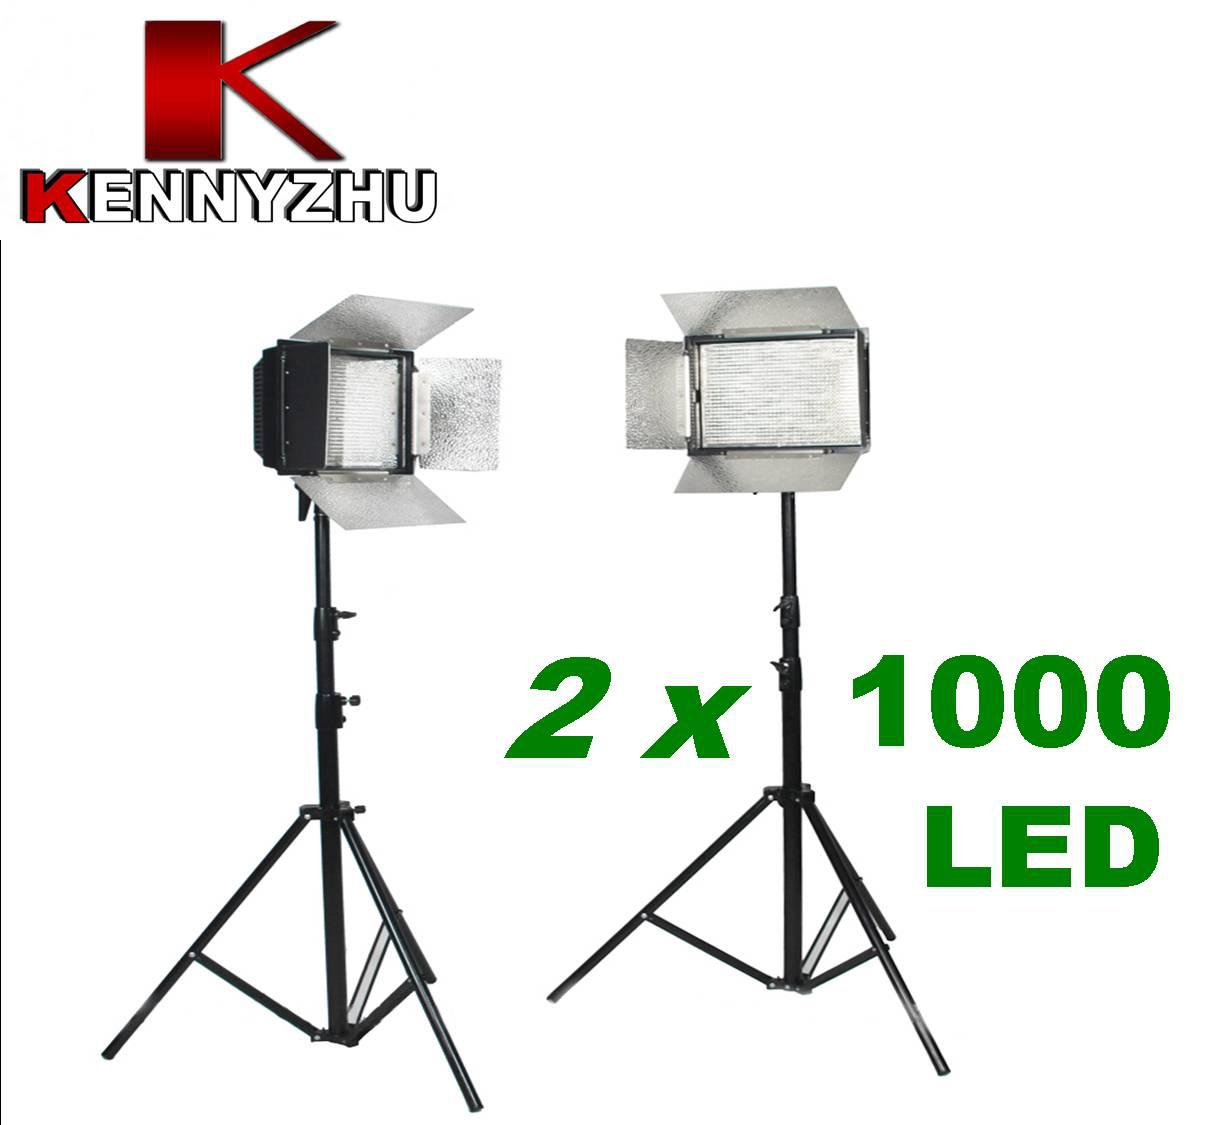 Wholesale Photo Light - Buy Pro Studio Lighting Kit 1000 LED Video ...